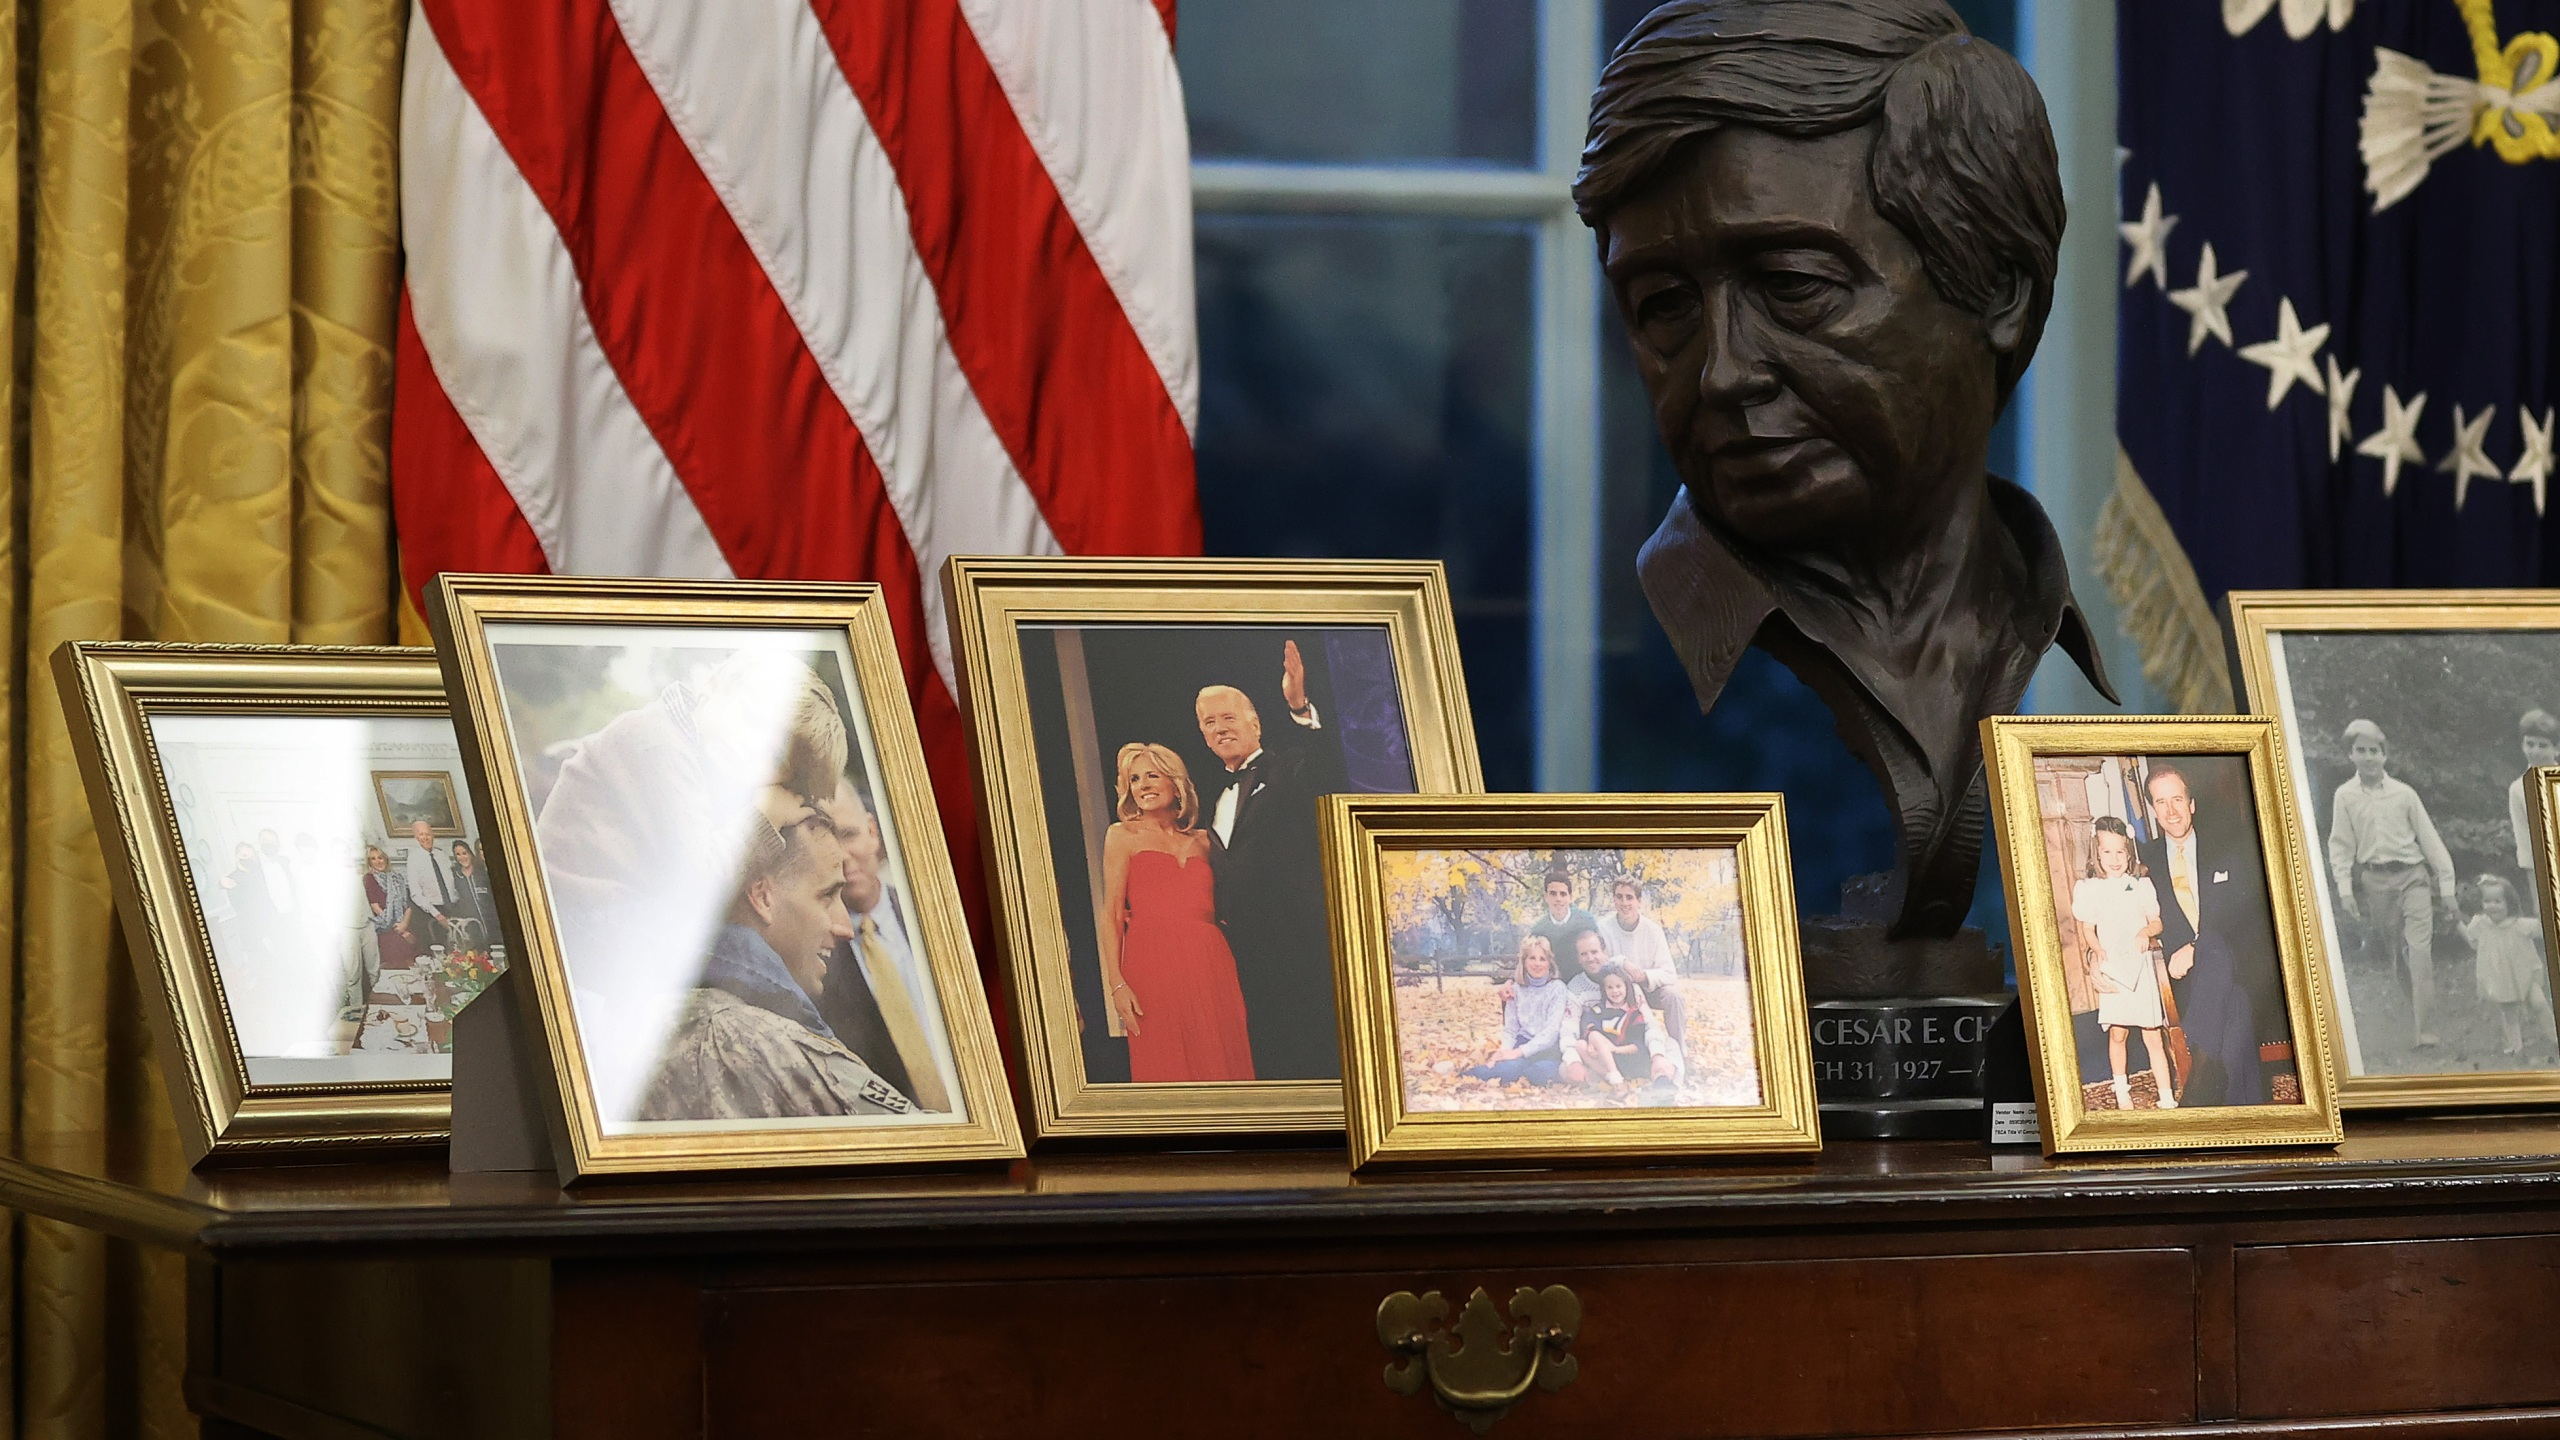 A bust of Cesar Chavez is displayed as President Joe Biden prepares to sign a series of executive orders at the Resolute Desk in the Oval Office just hours after his inauguration on Jan. 20, 2021. (Chip Somodevilla / Getty Images)